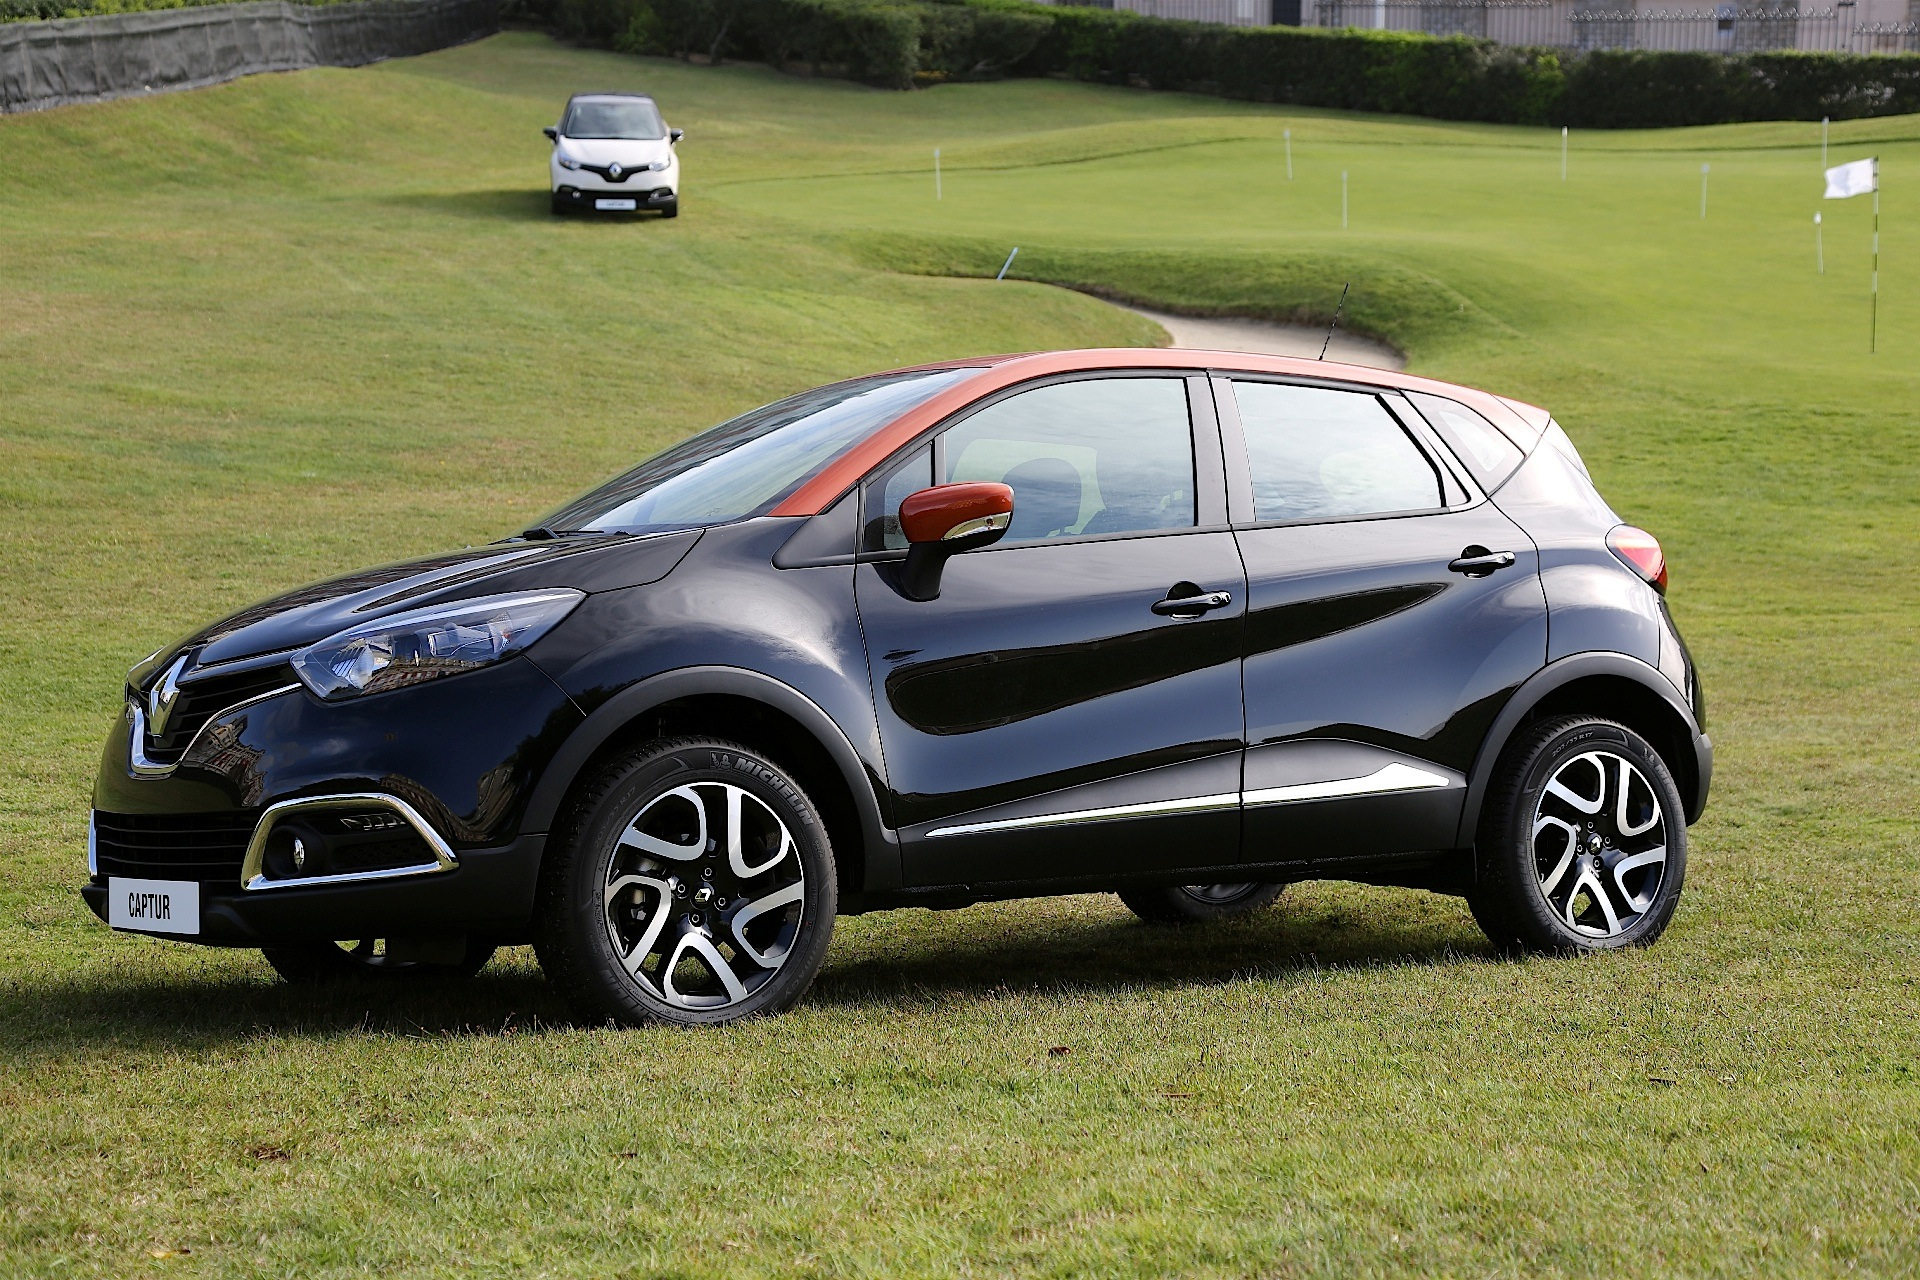 renault captur specs photos 2013 2014 2015 2016 2017 autoevolution. Black Bedroom Furniture Sets. Home Design Ideas